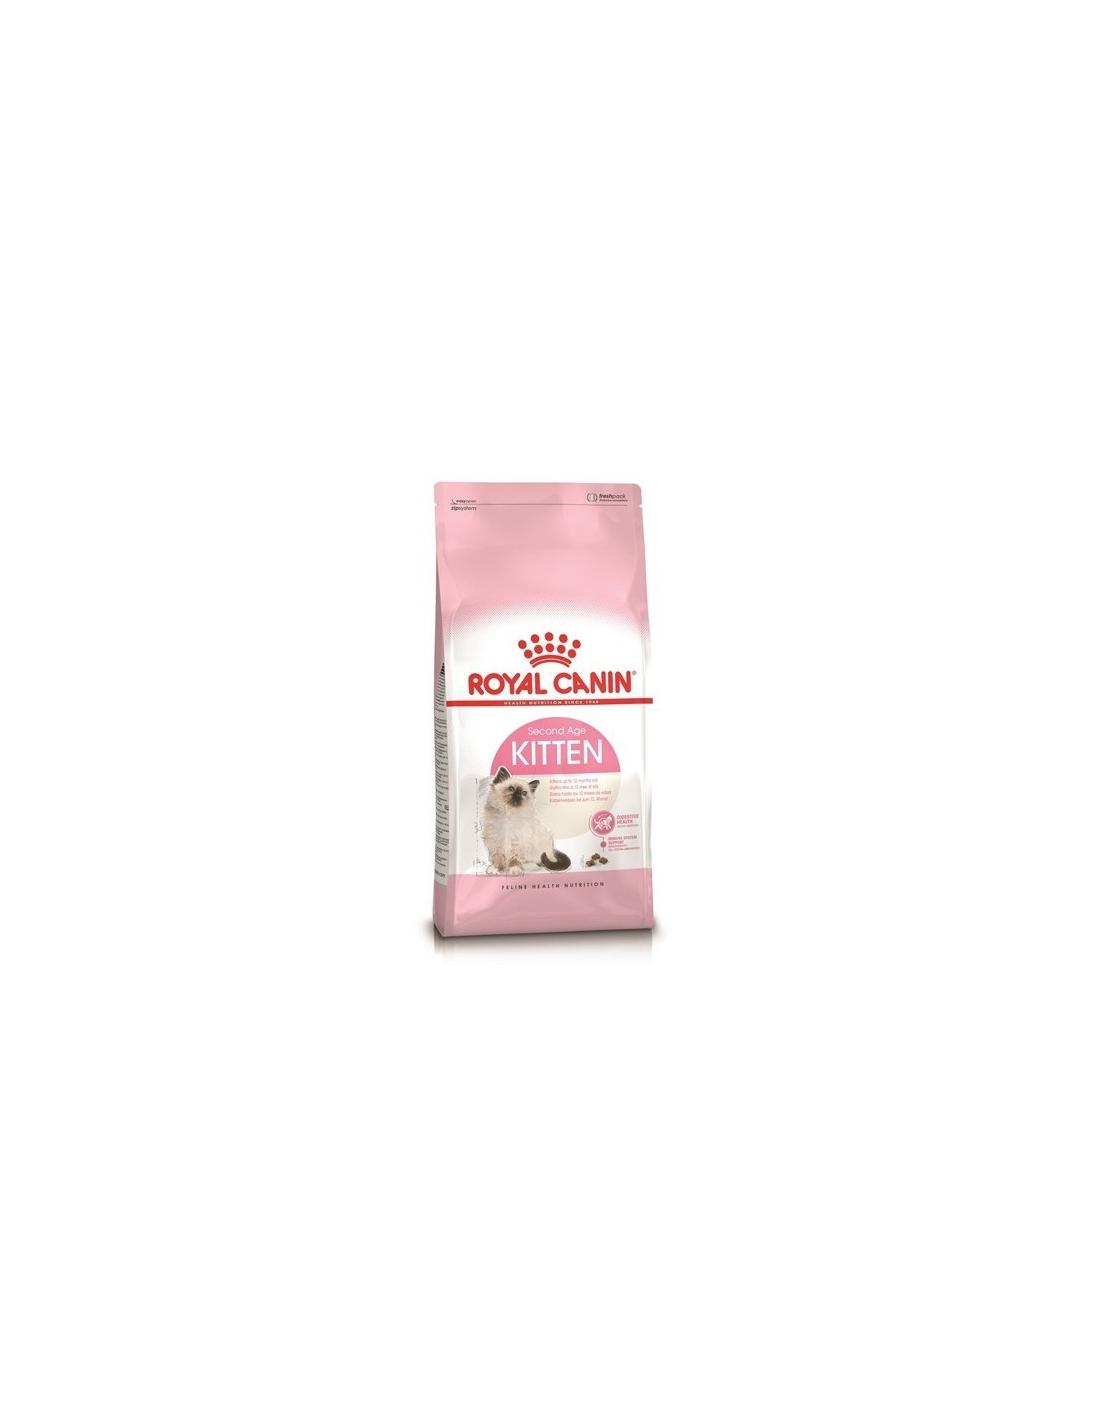 KITTEN 400G ROYAL CANIN - 1